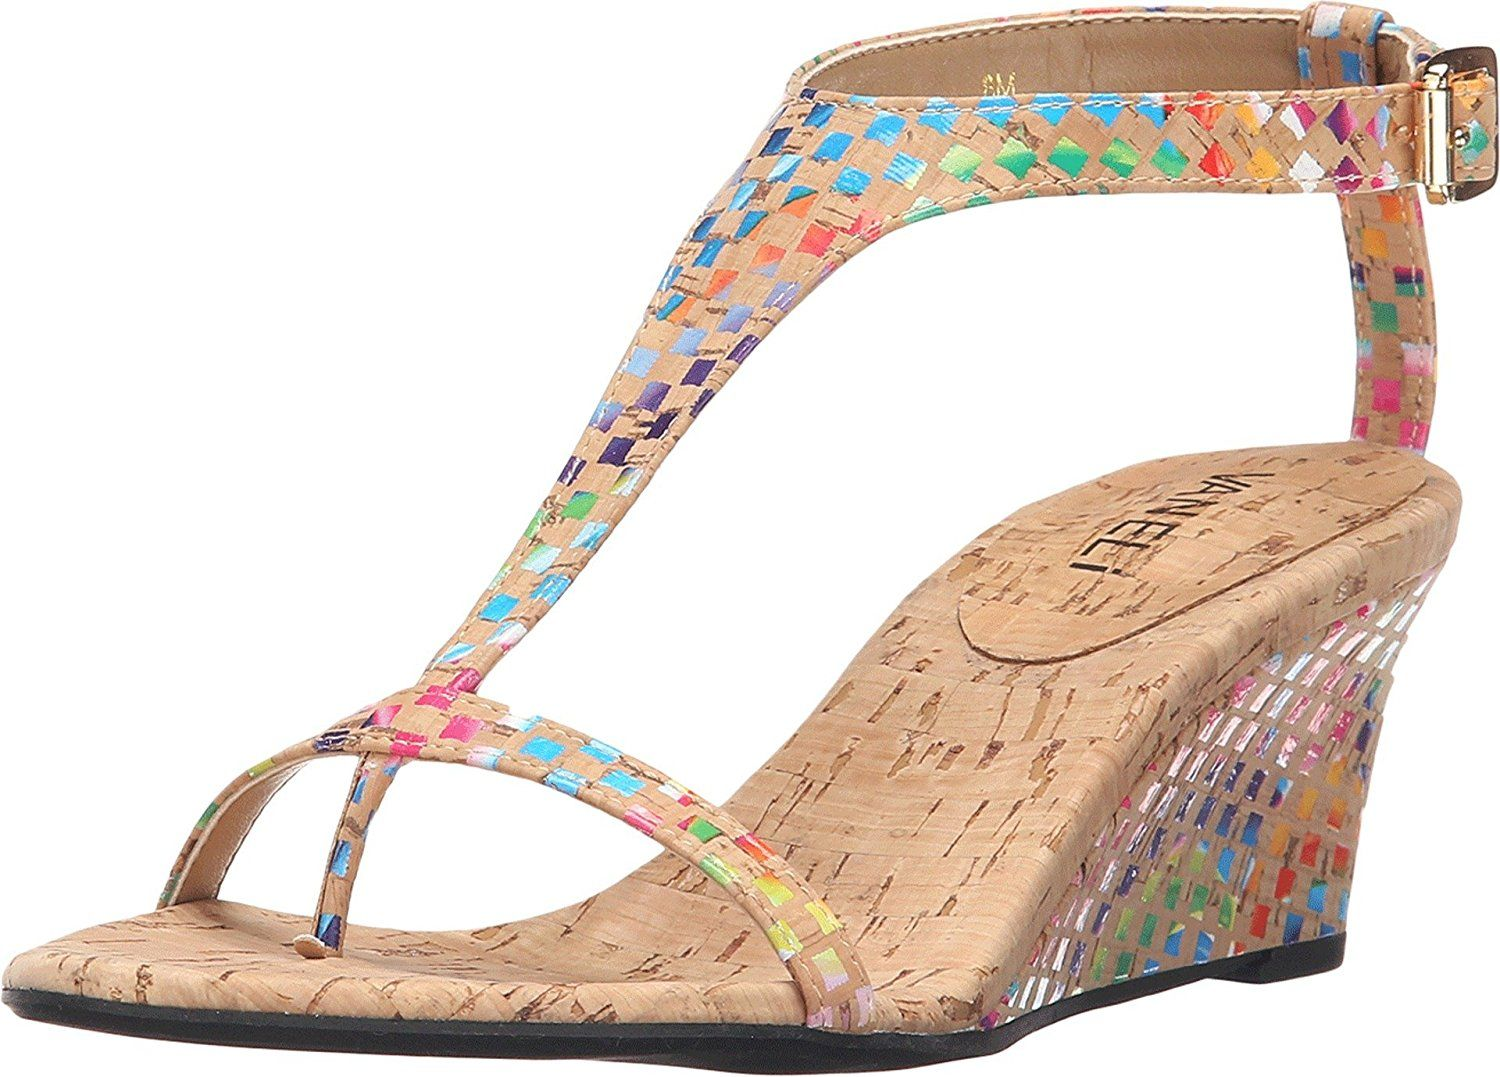 07c2e06212 Vaneli Women's Marion Natural Multi Cork Sandal 9 1/2 M (B) * Check out  this great image : Strappy sandals